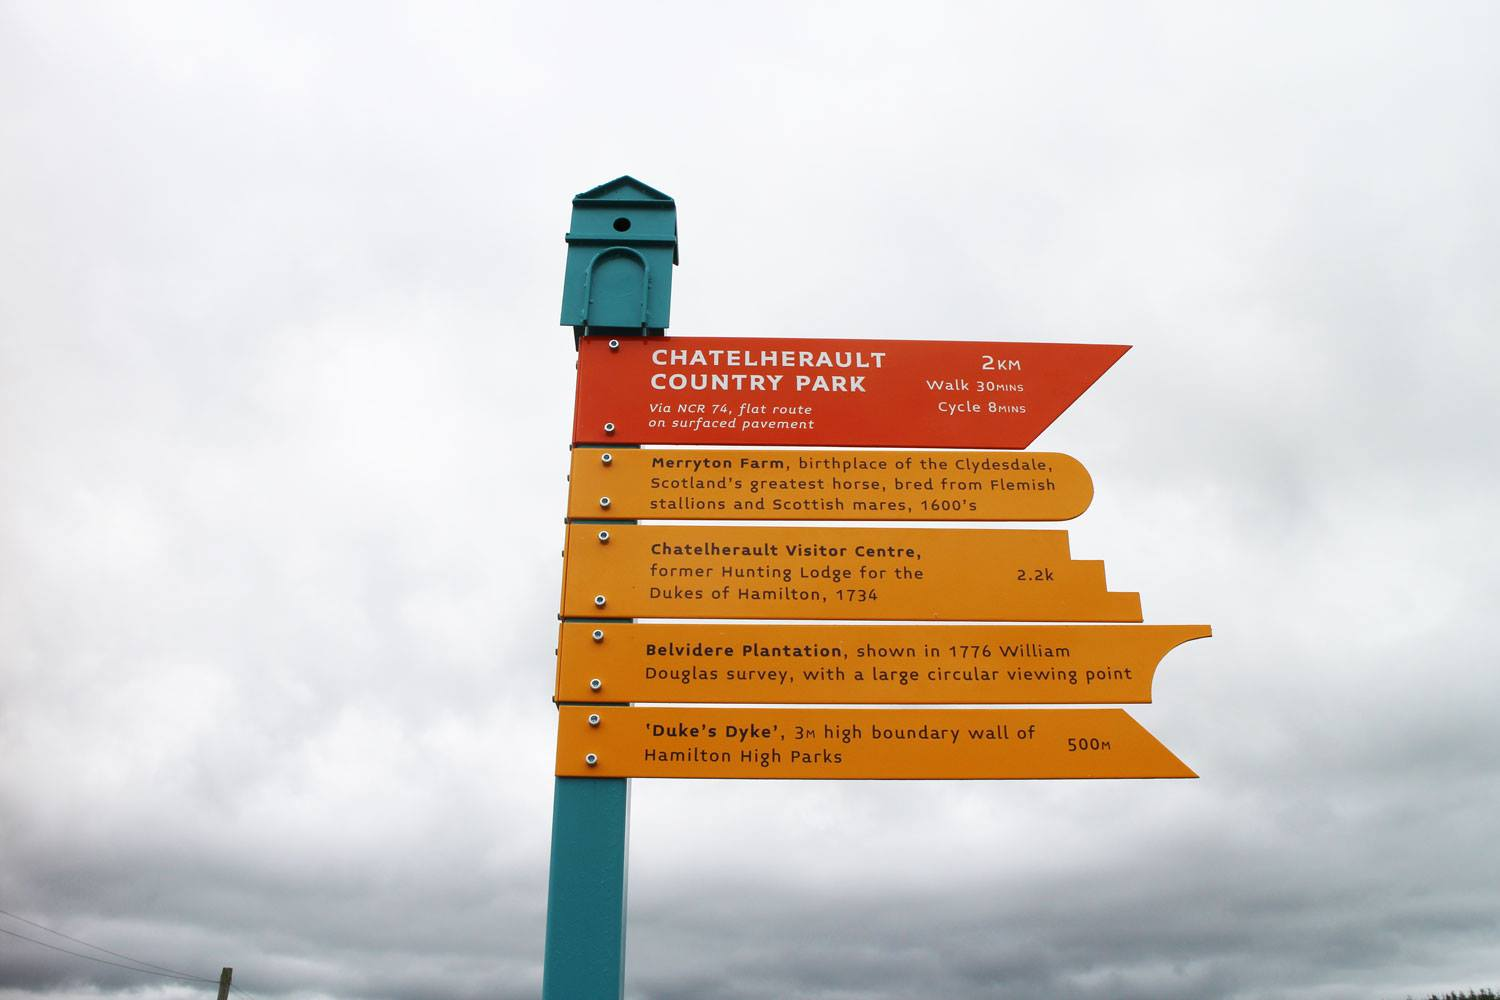 Wayfinding signage installed as part of the Make Your Way Chatelherault project